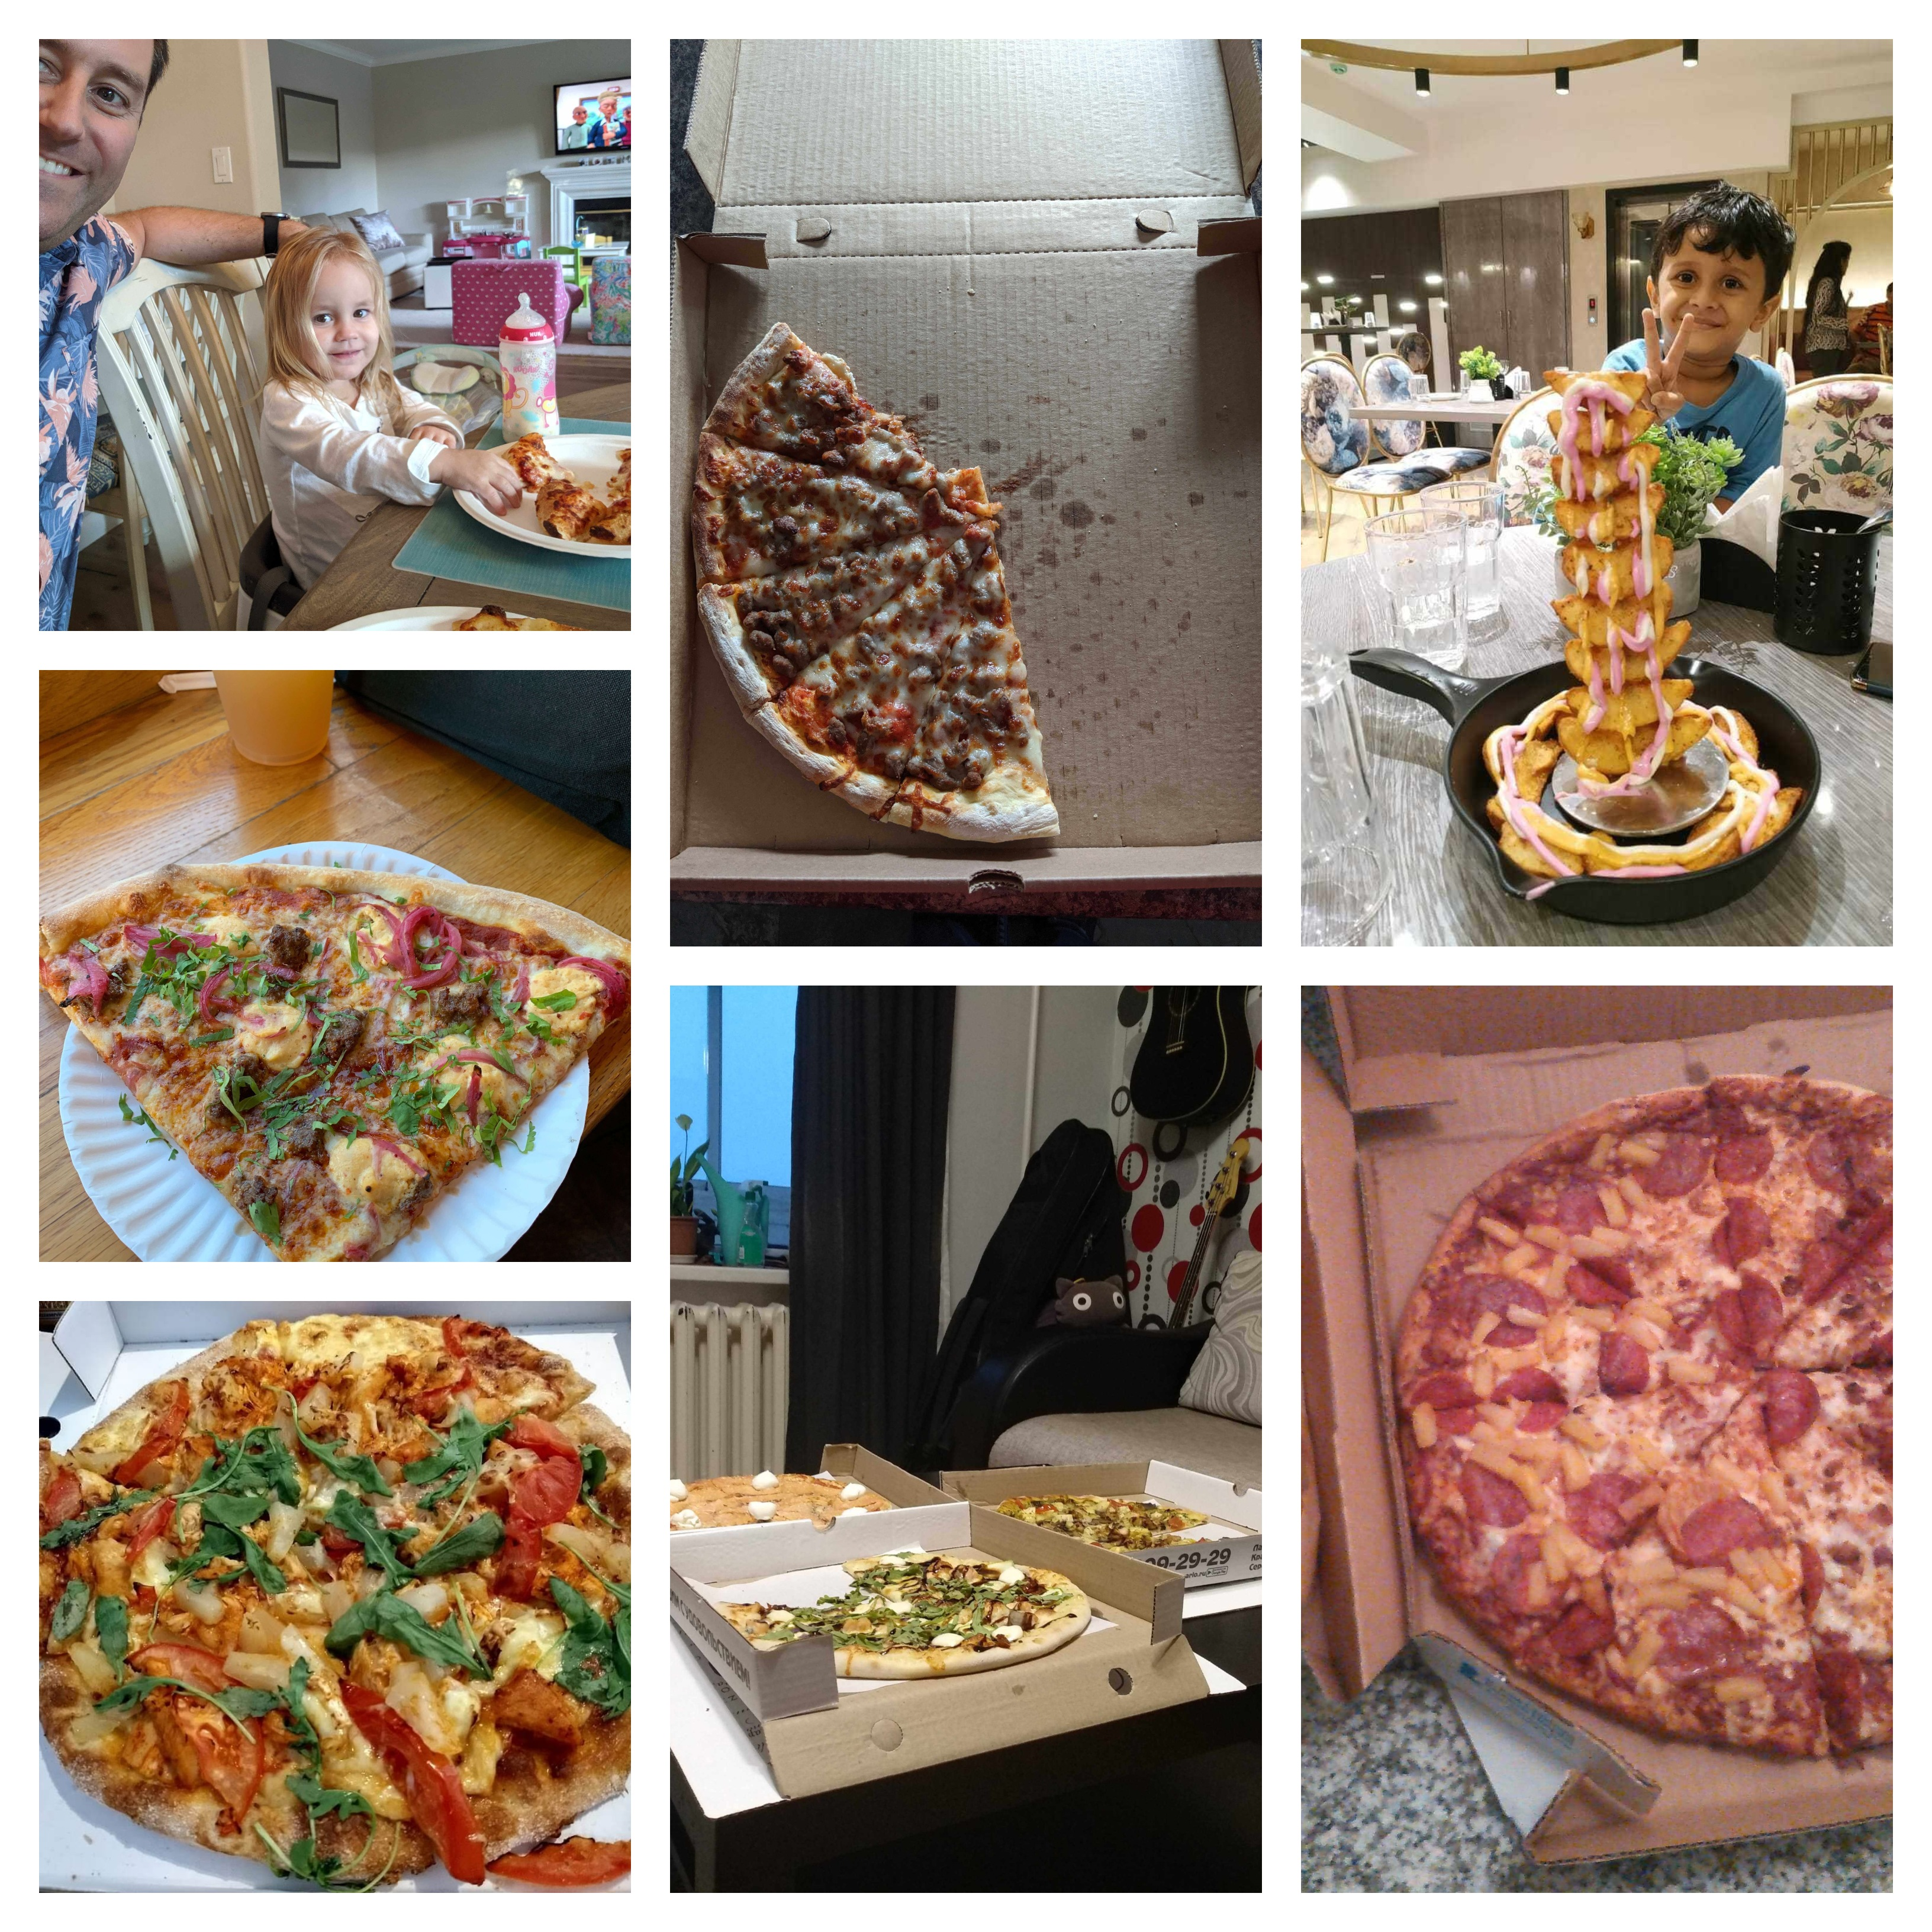 Support Pizza Party 2019-09-27 Collage 4